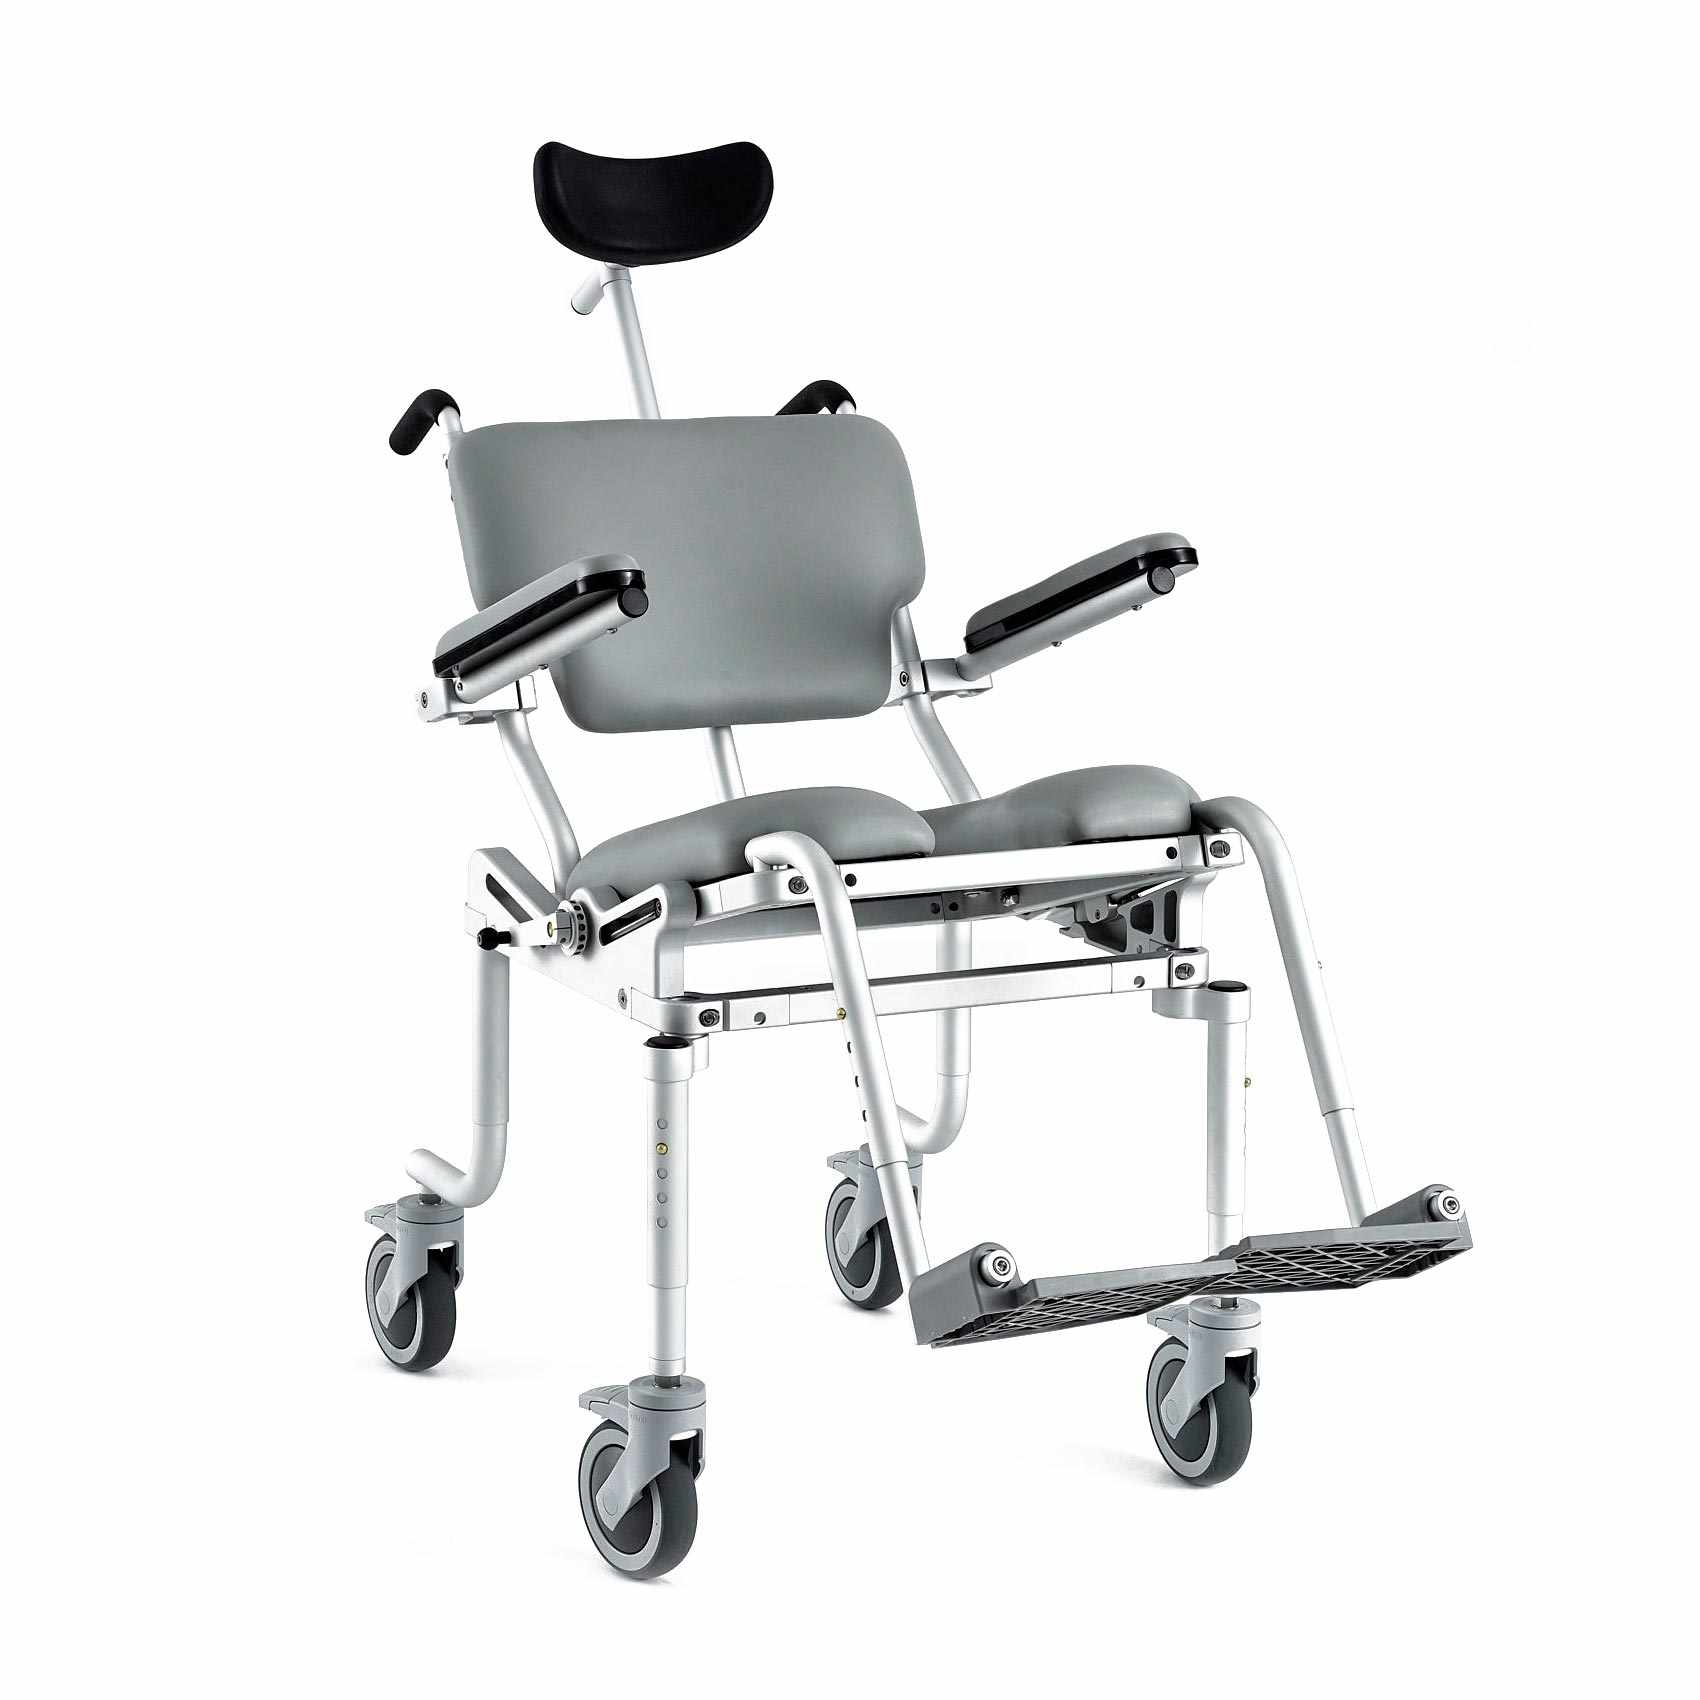 Nuprodx Multichair 4000Tilt Roll-In Shower Commode Chair   Medicaleshop